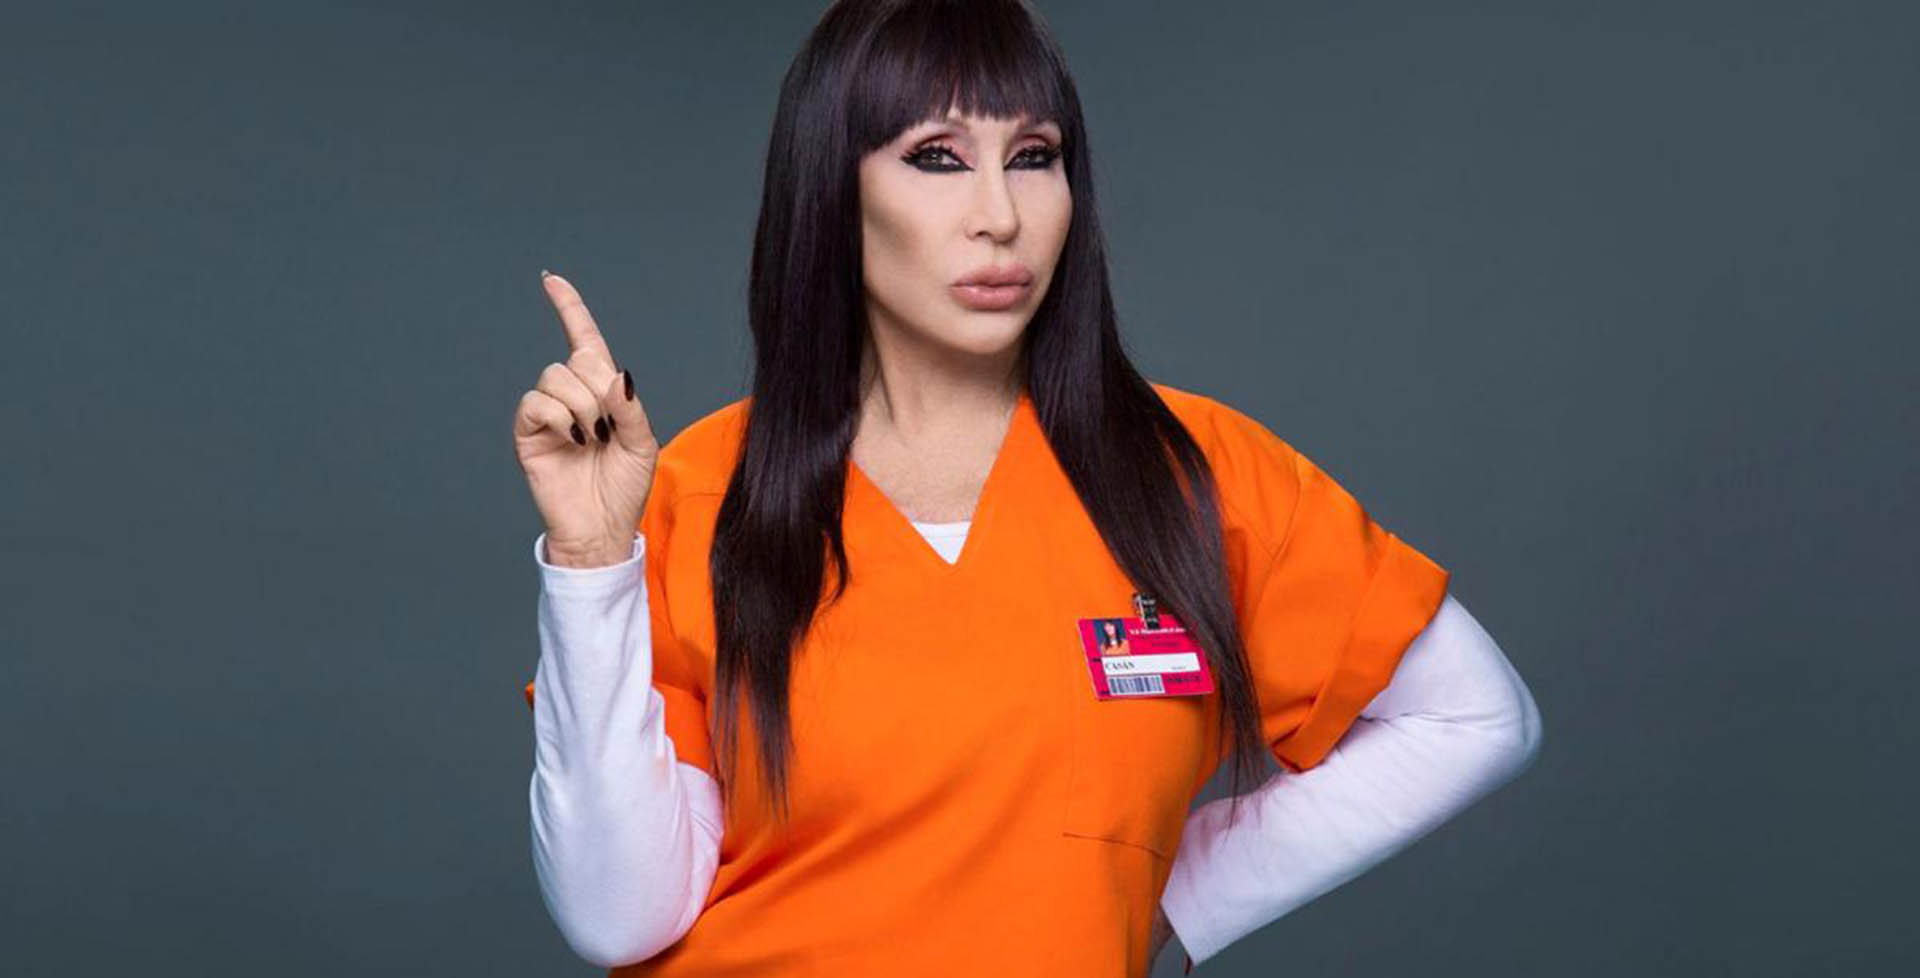 Moria fue convocada para promocionar la última temporada de Orange is the new black